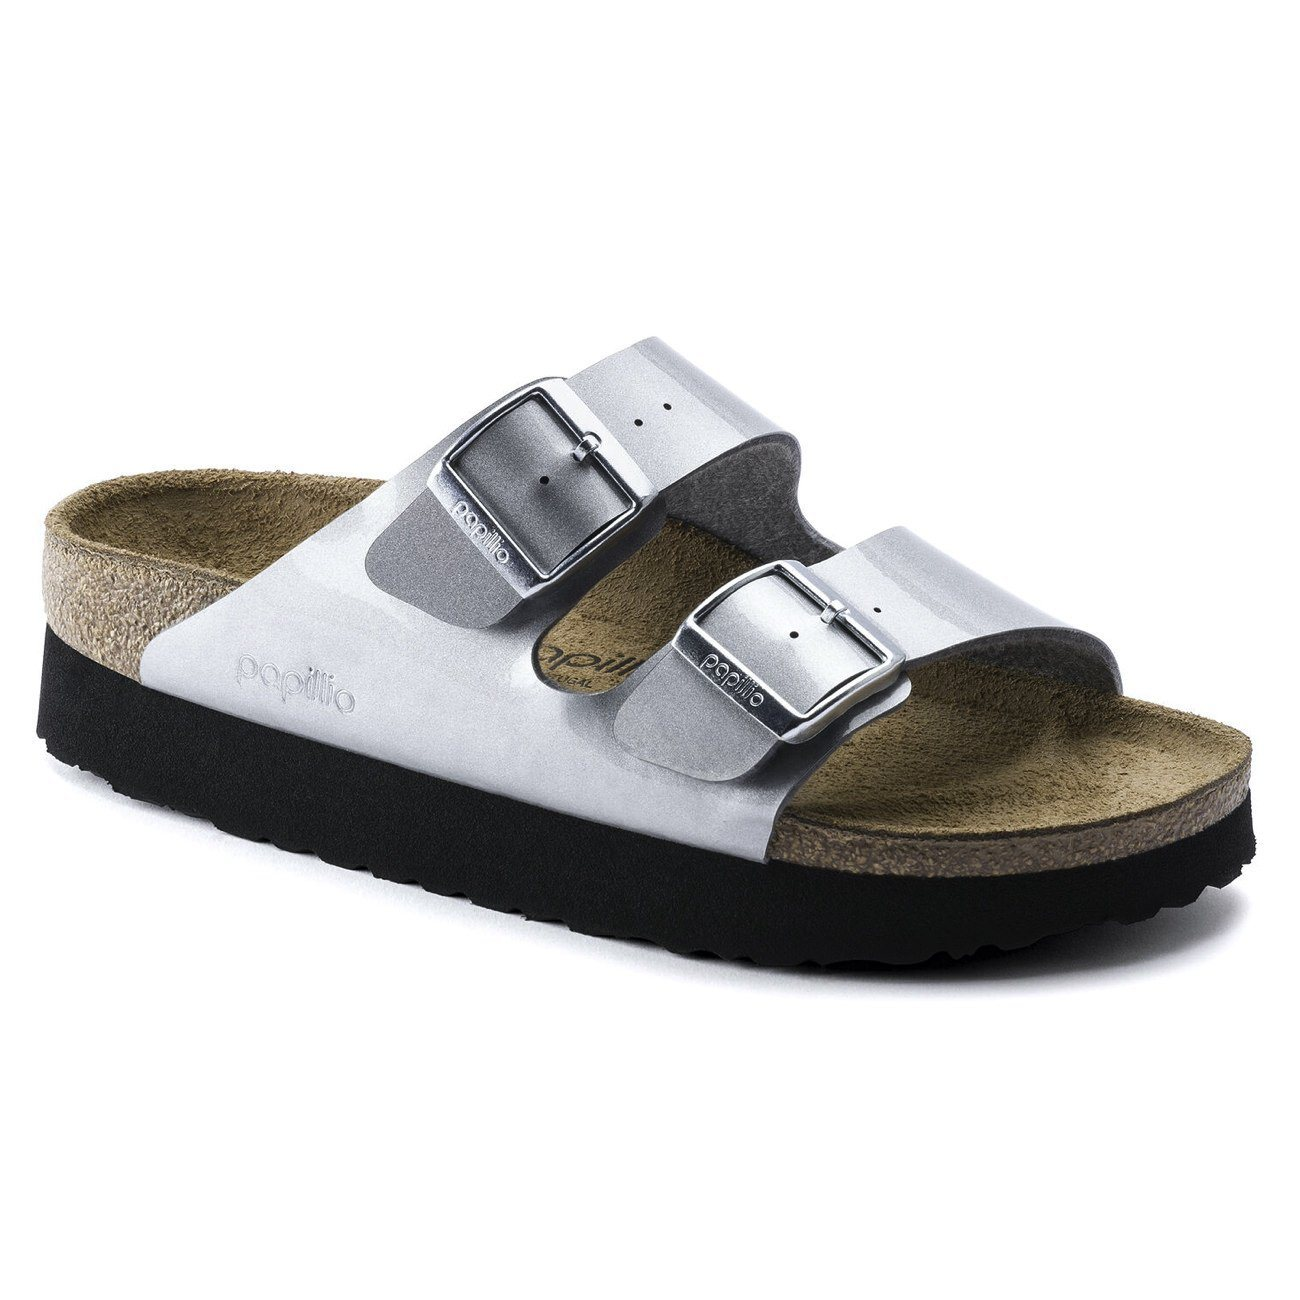 Birkenstock Papillio, Arizona, Platform Sole, Birko-Flor, Narrow Fit, Metallic Silver Sandals Birkenstock Metallic SIlver 40